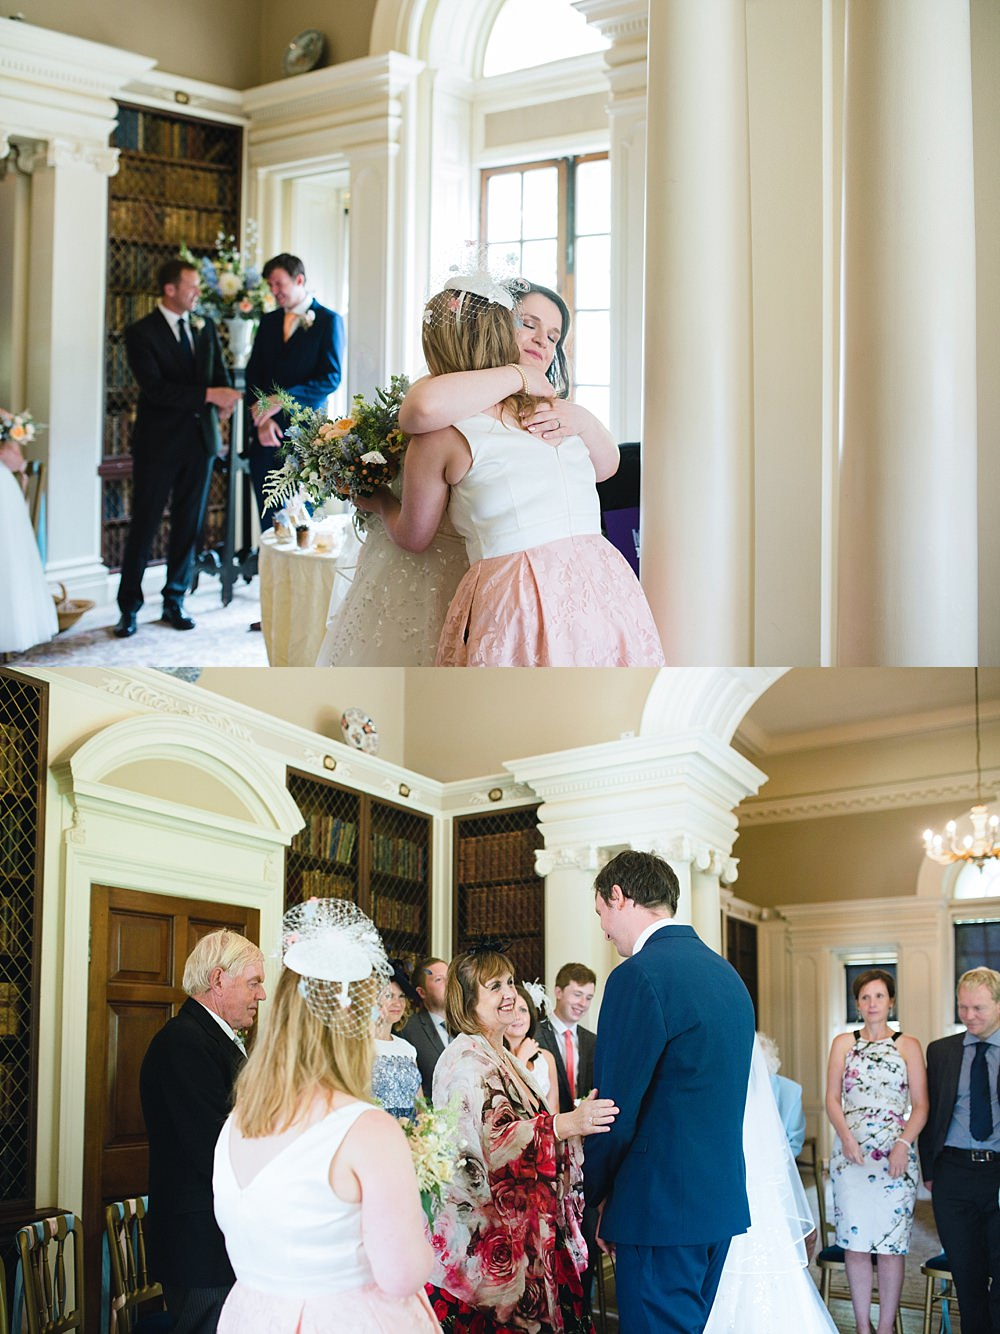 Fine Art Wedding Photographers,The Gibsons,elegant wedding photographers glasgow,glasgow wedding photographer: glasgow wedding photographers,husband and wife photographers scotland,natural wedding photographers,pollok house wedding,romantic photographers Scotland,romantic wedding photographers,soft wedding photographers,